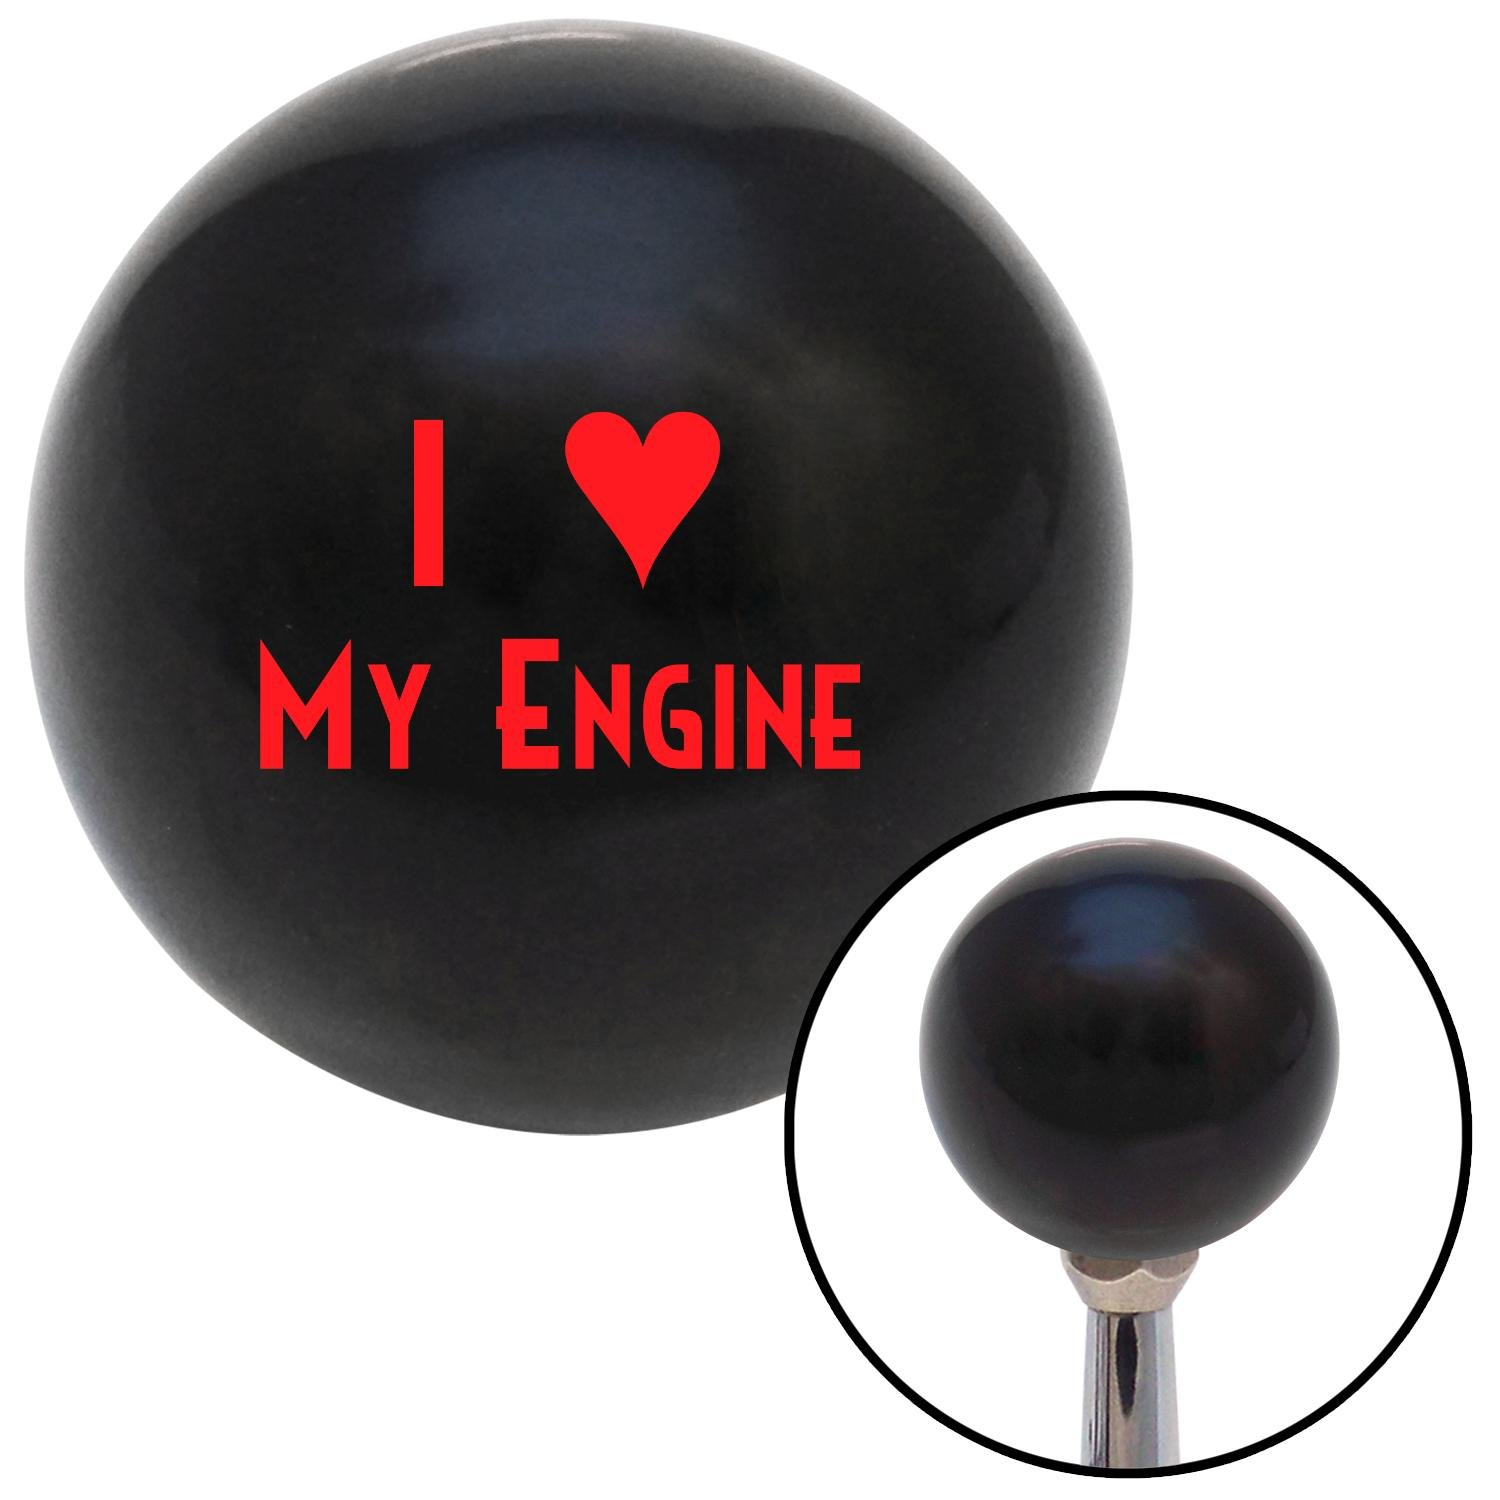 American Shifter 105692 Black Shift Knob with M16 x 1.5 Insert Red I 3 My Engine